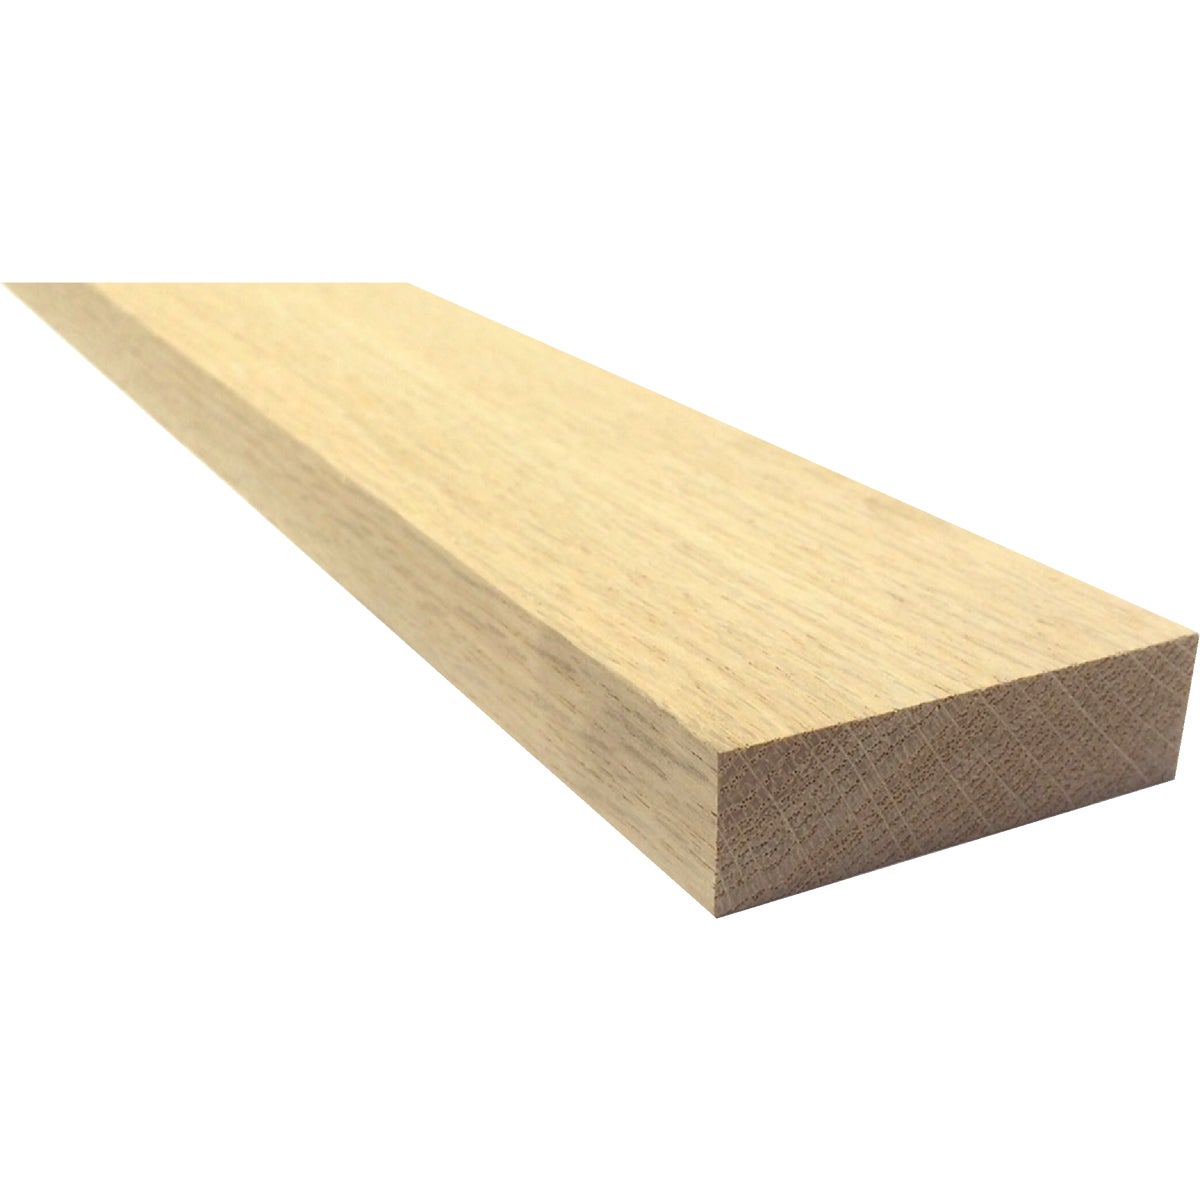 "1X3""X8' OAK BOARD - PB19531 by Waddell Mfg Company"